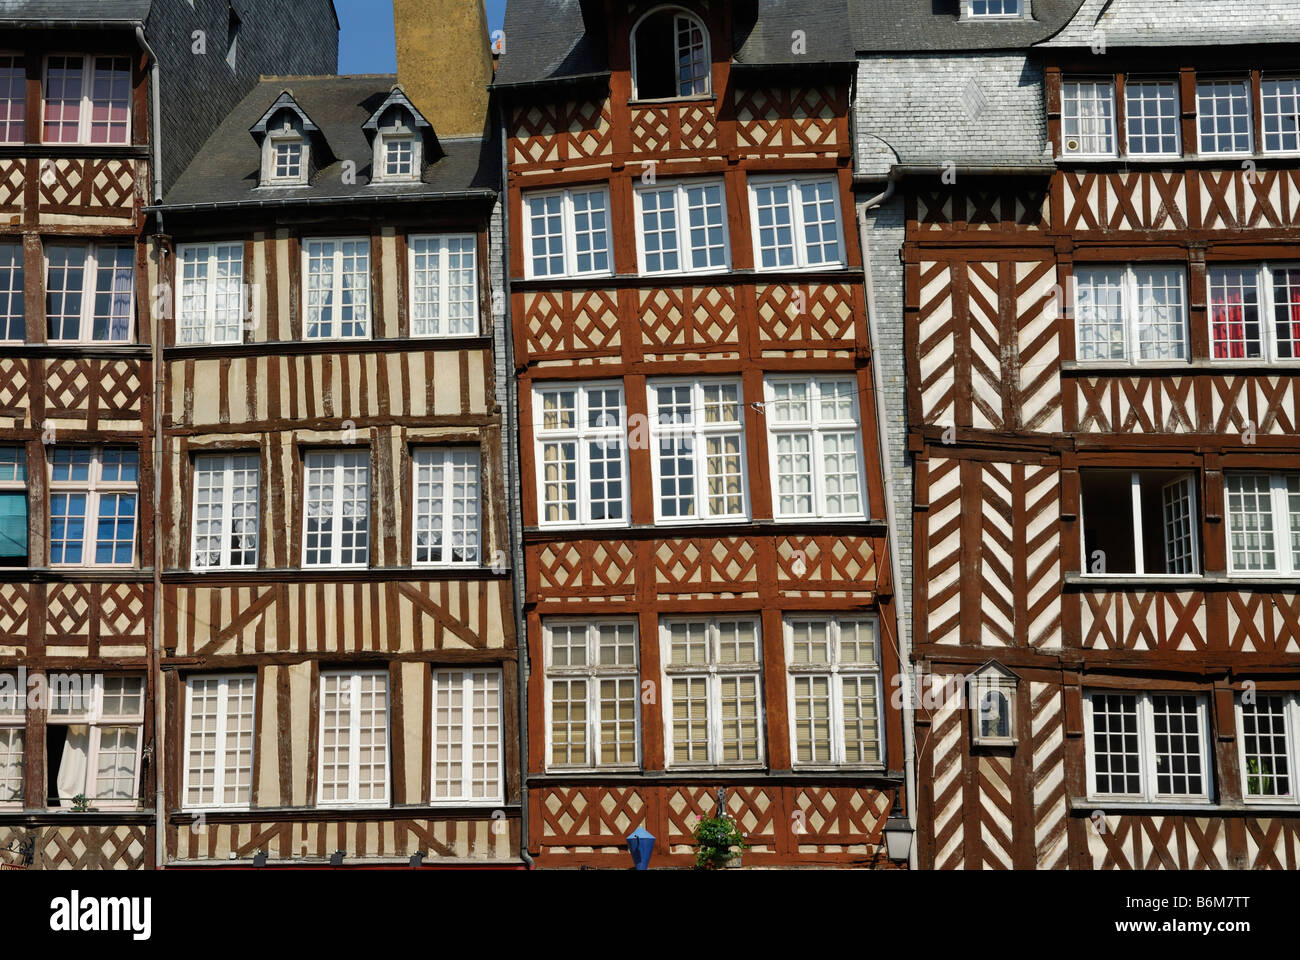 Rennes Brittany France Colourful medieval half timbered buildings on Place du Champ Jacquet - Stock Image